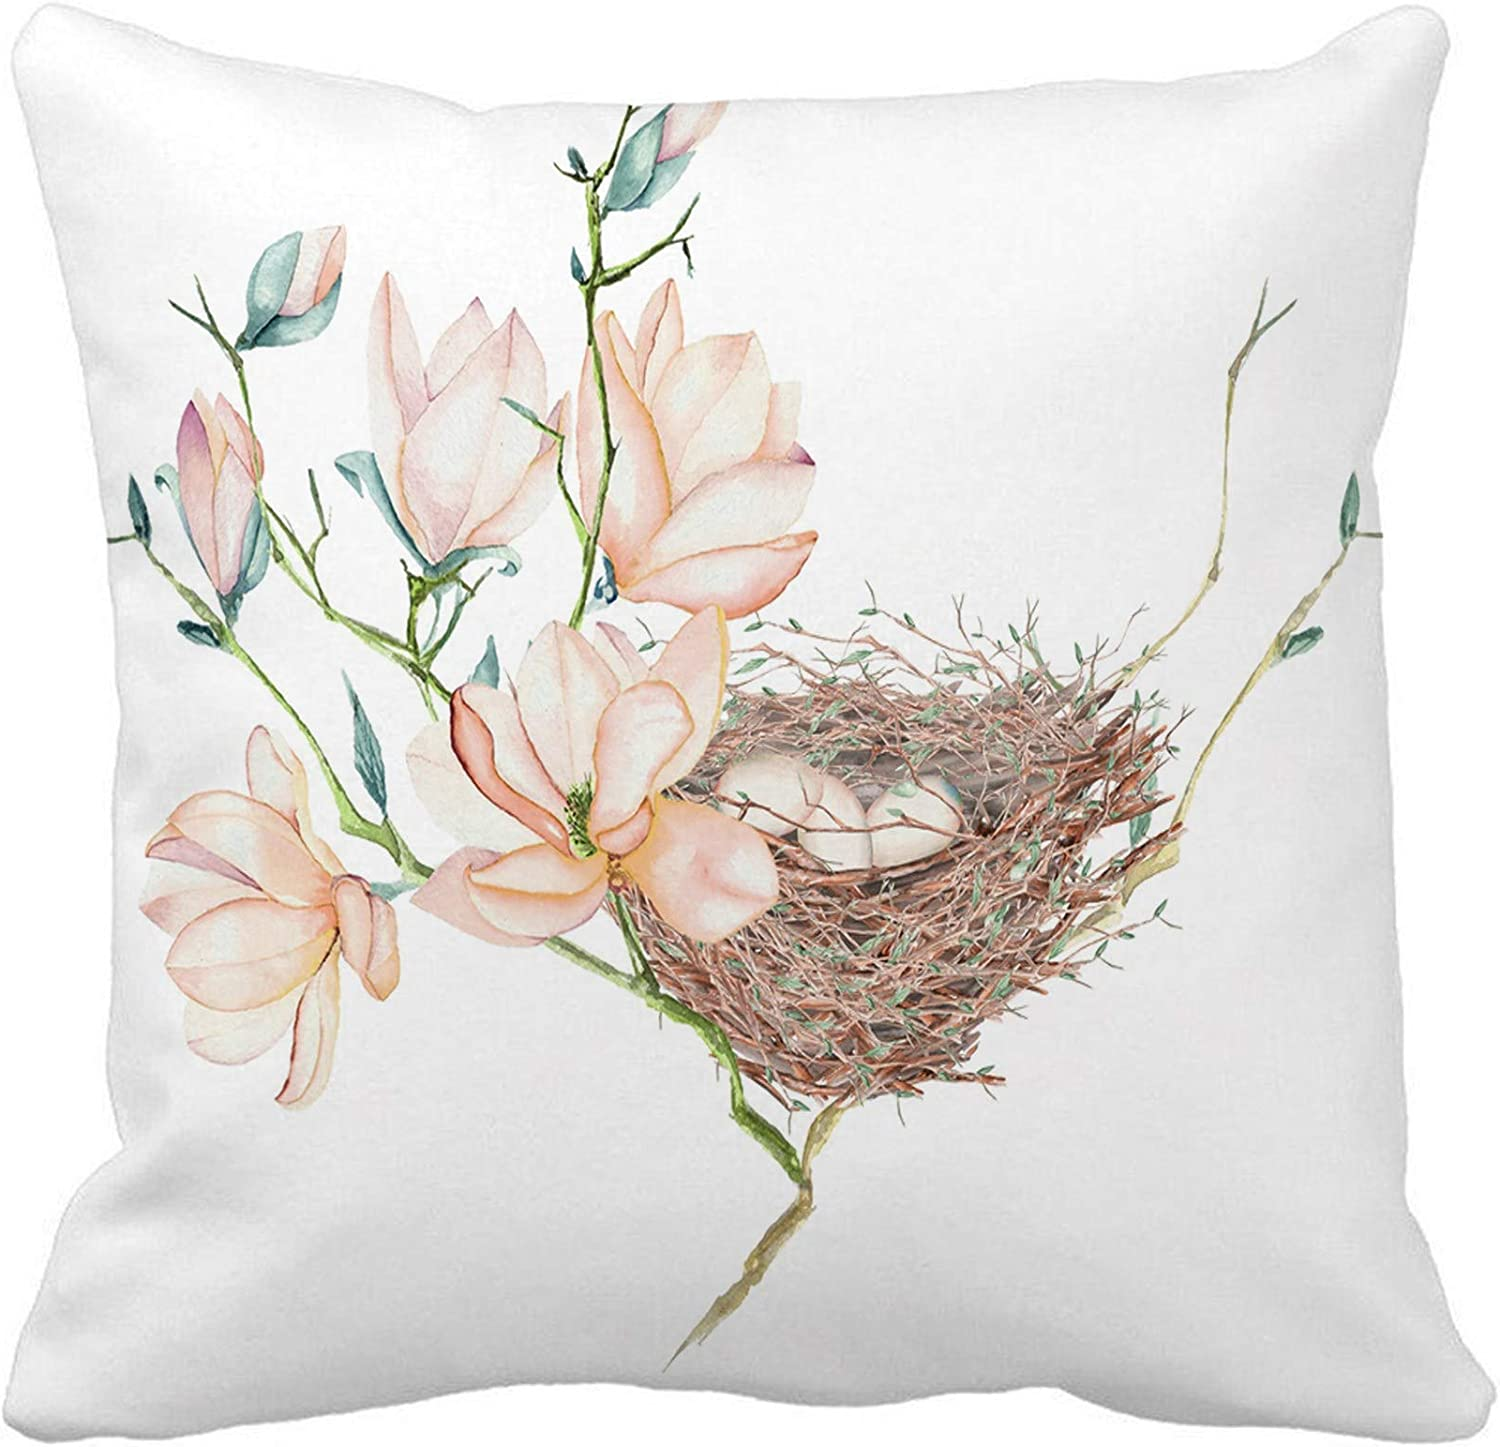 Awowee Throw Pillow Cover Pink of The Watercolor Bird Nest Eggs Magnolia Tree 18x18 Inches Pillowcase Home Decorative Square Pillow Case Cushion Cover